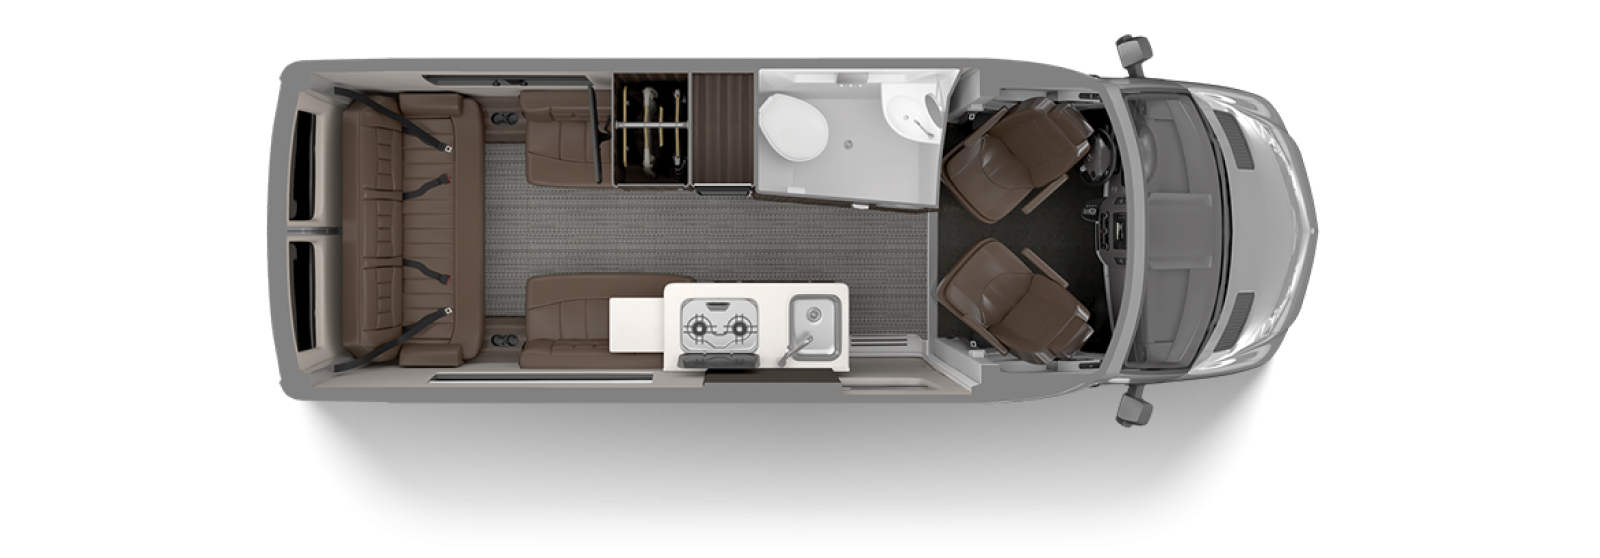 Airstream Interstate 19 Floor Plan